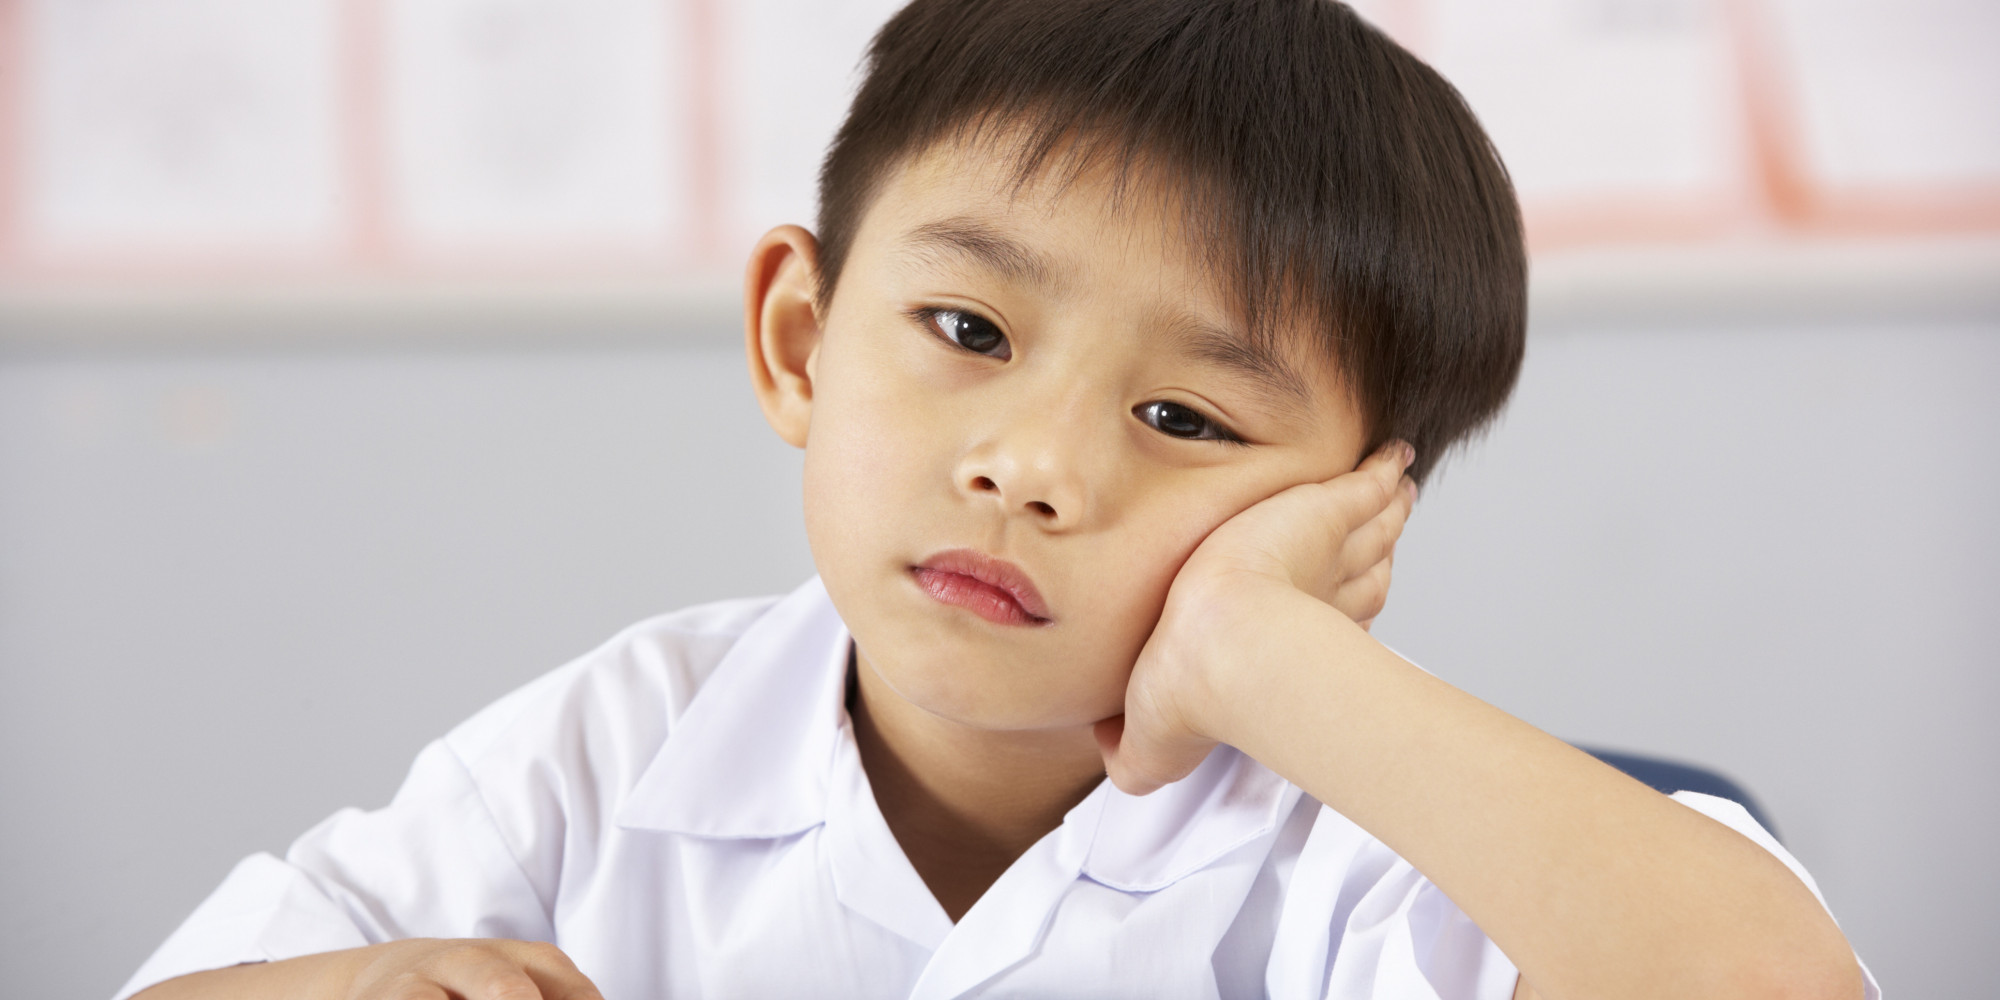 How Childhood Stress Affects Future Health | HuffPost